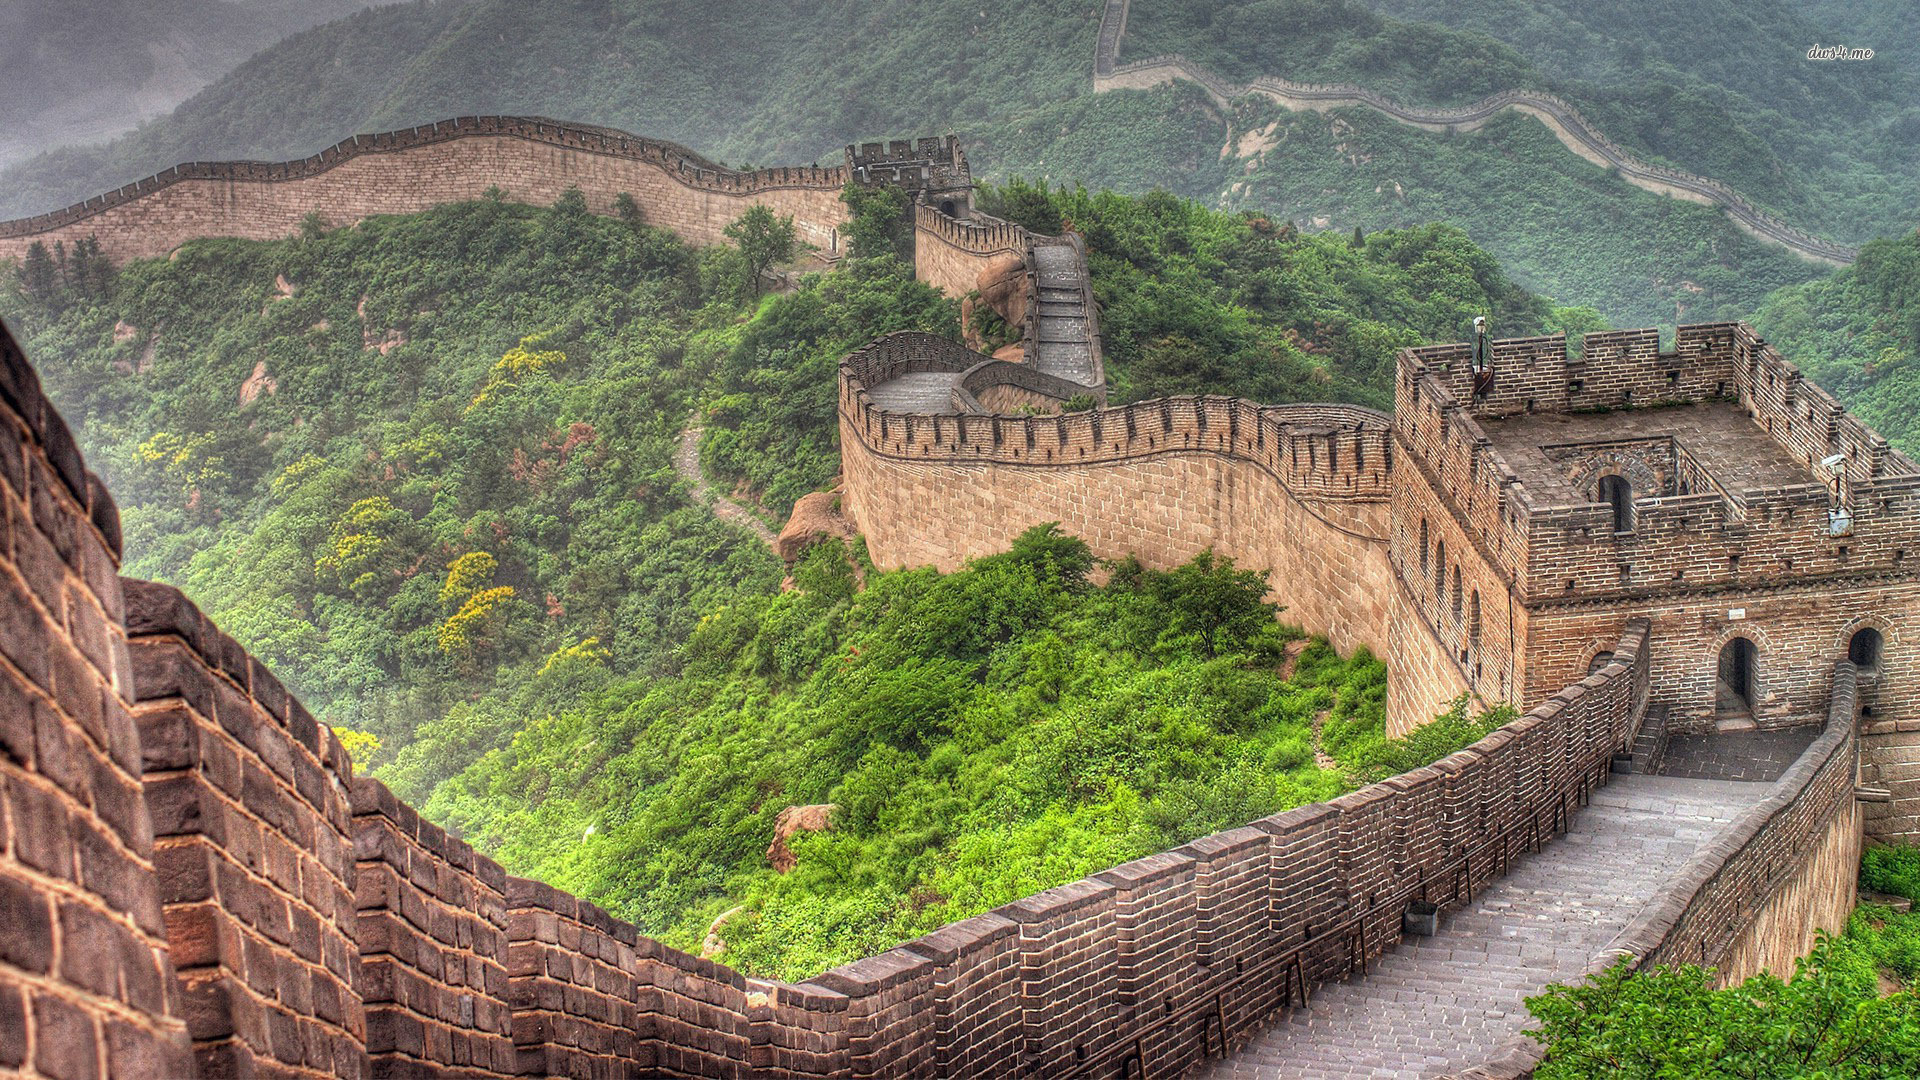 Wall of China High Quality Wallpaper   Travel HD Wallpapers 1920x1080